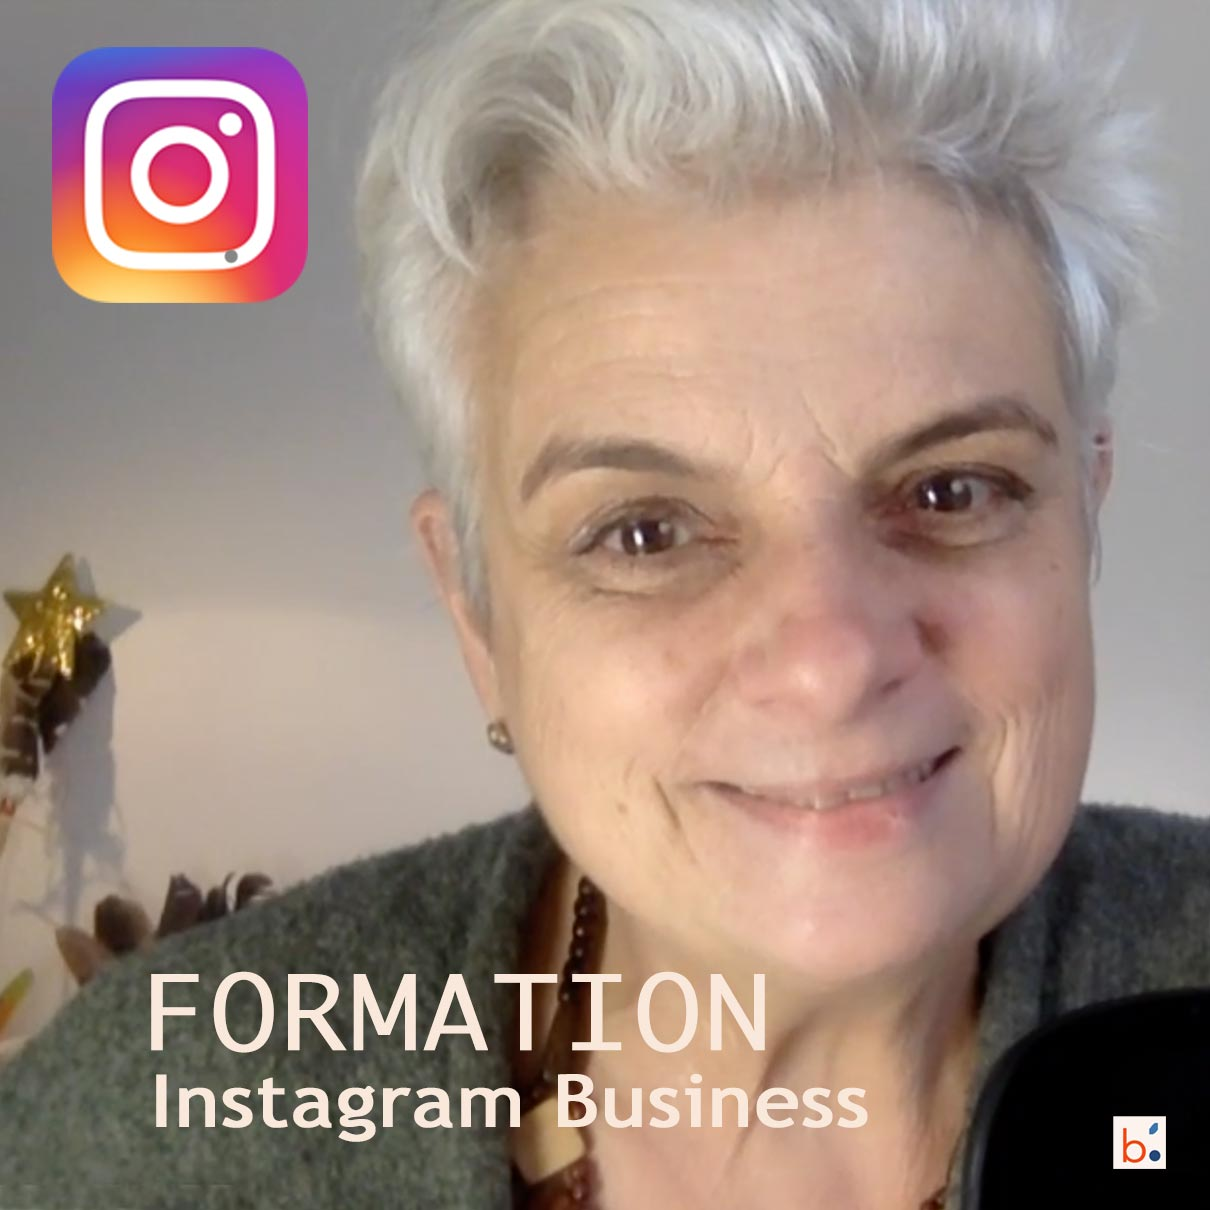 Formation Instagram business